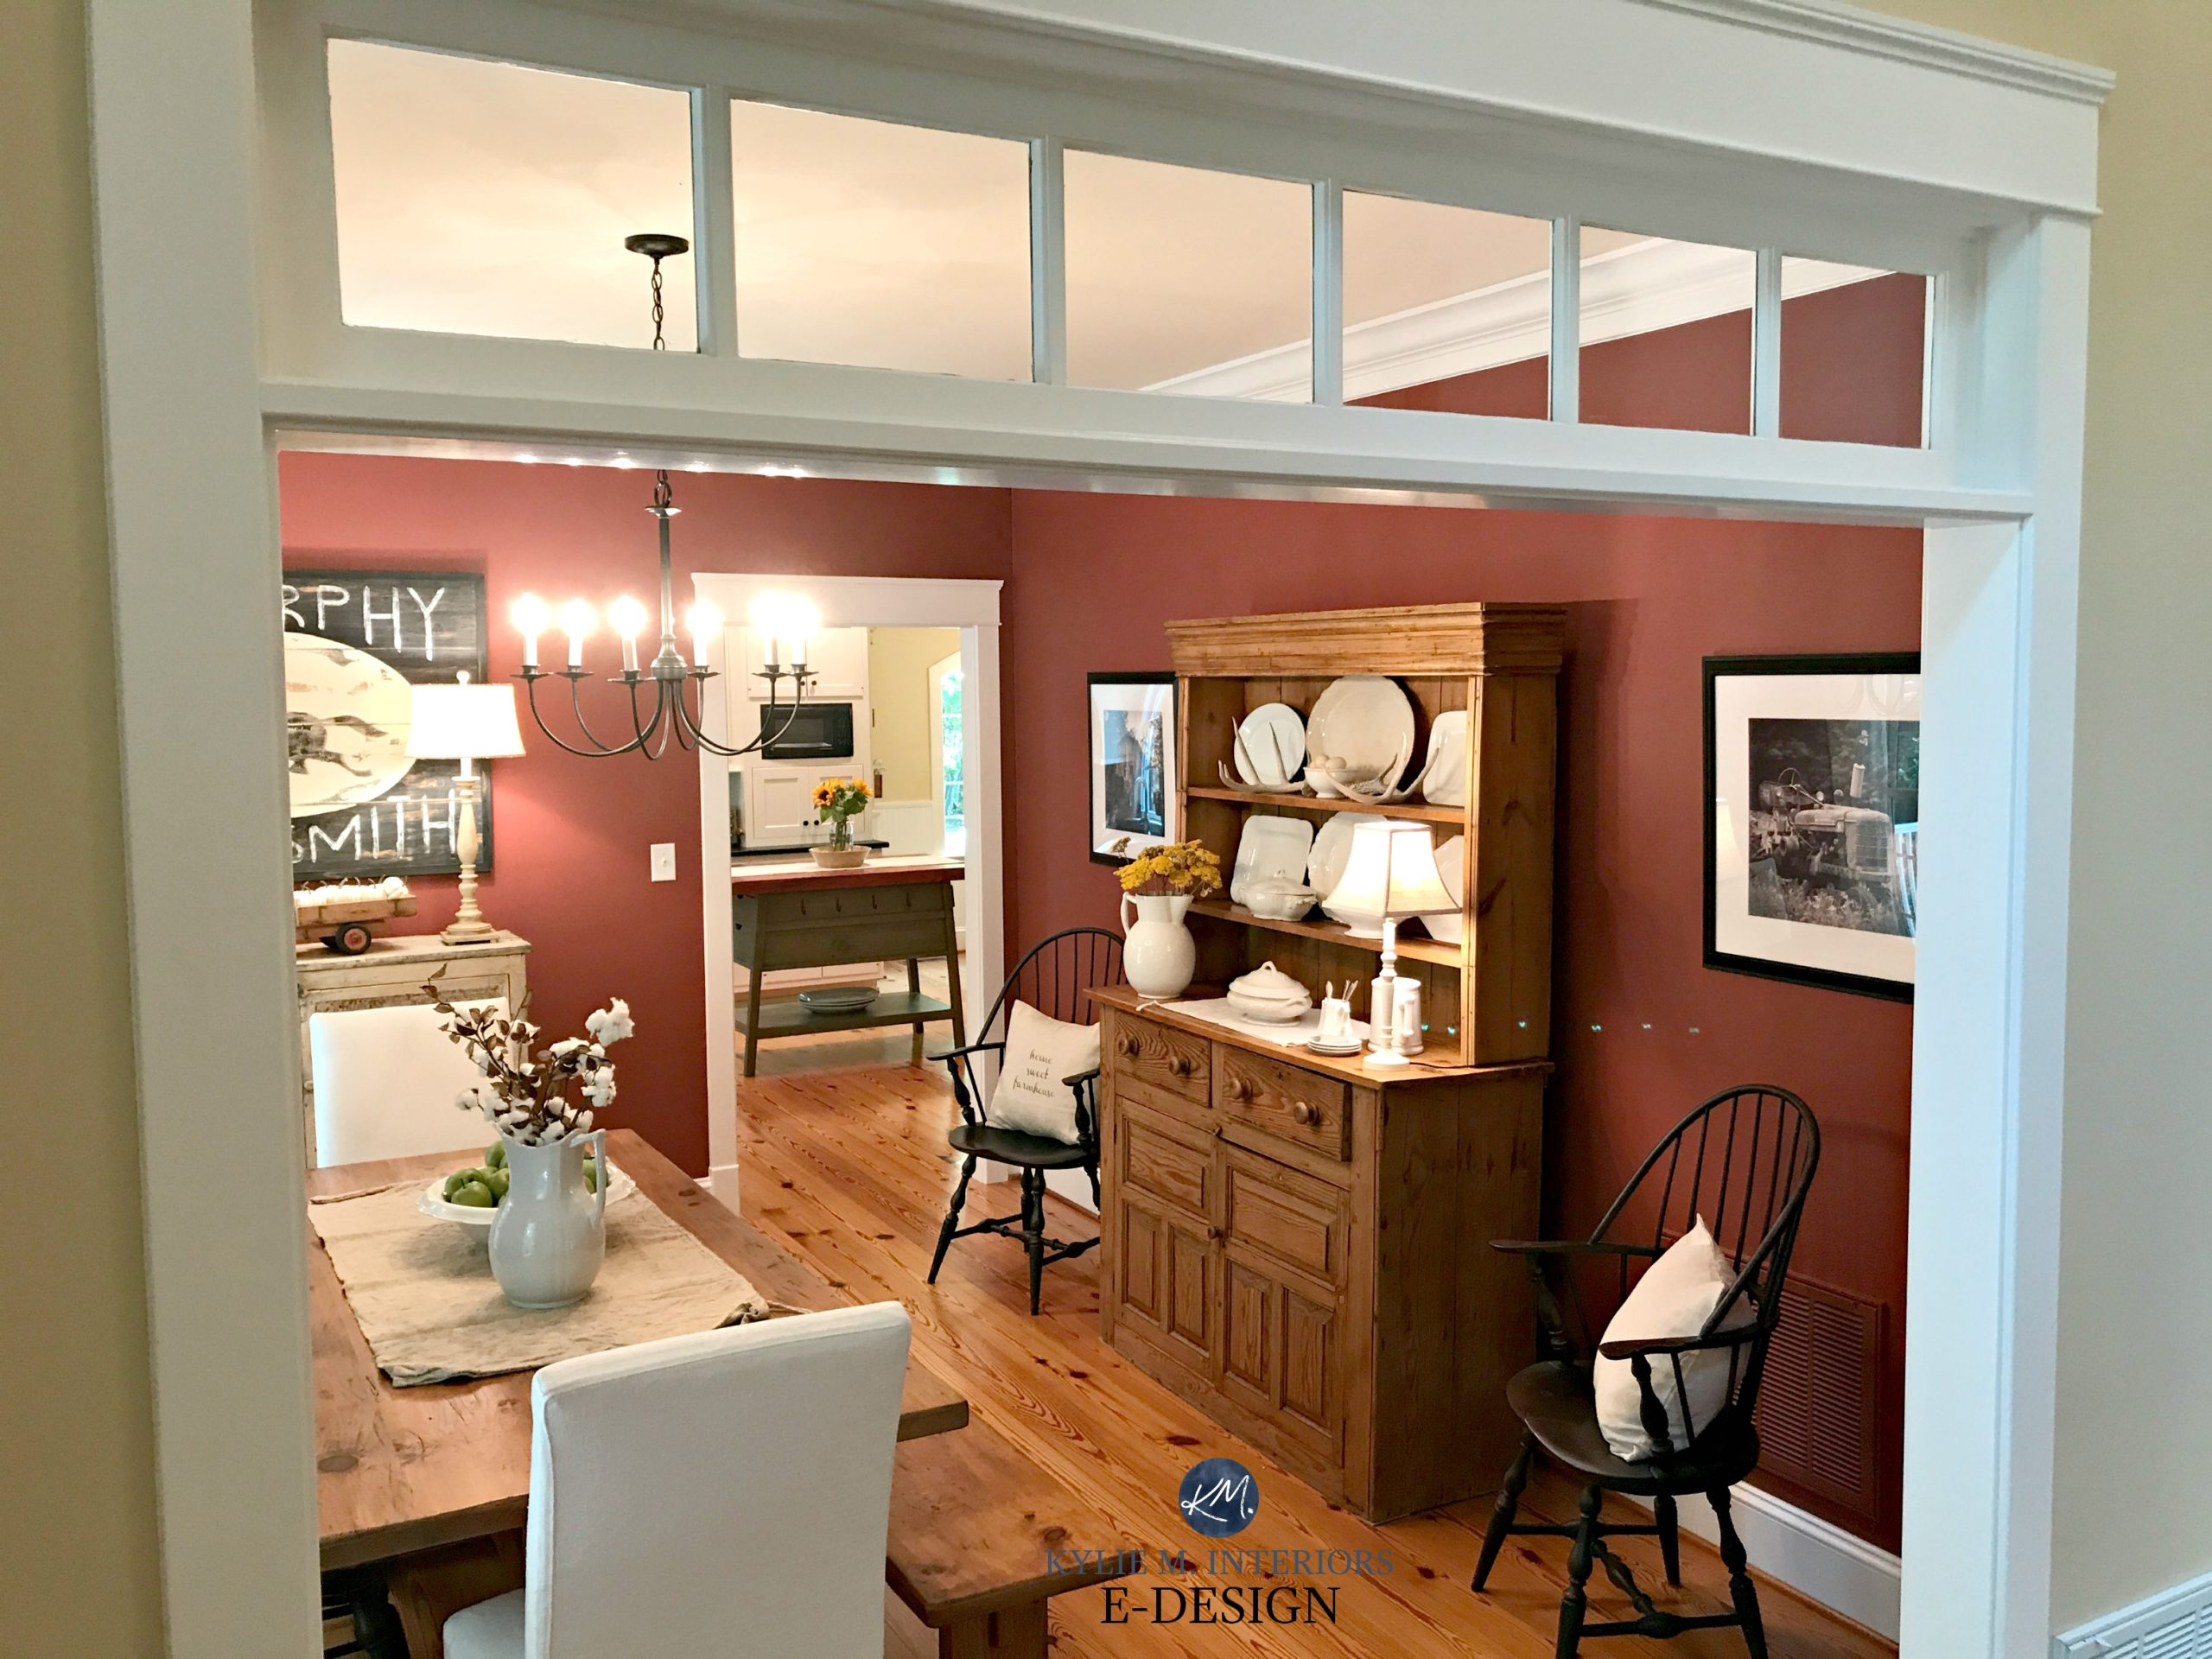 Farmhouse Country Dining Room Painted Benjamin Moore Onondaga Clay Red Paint Colour Pine Wood Flooring And Furniture Kylie M Online Consulting